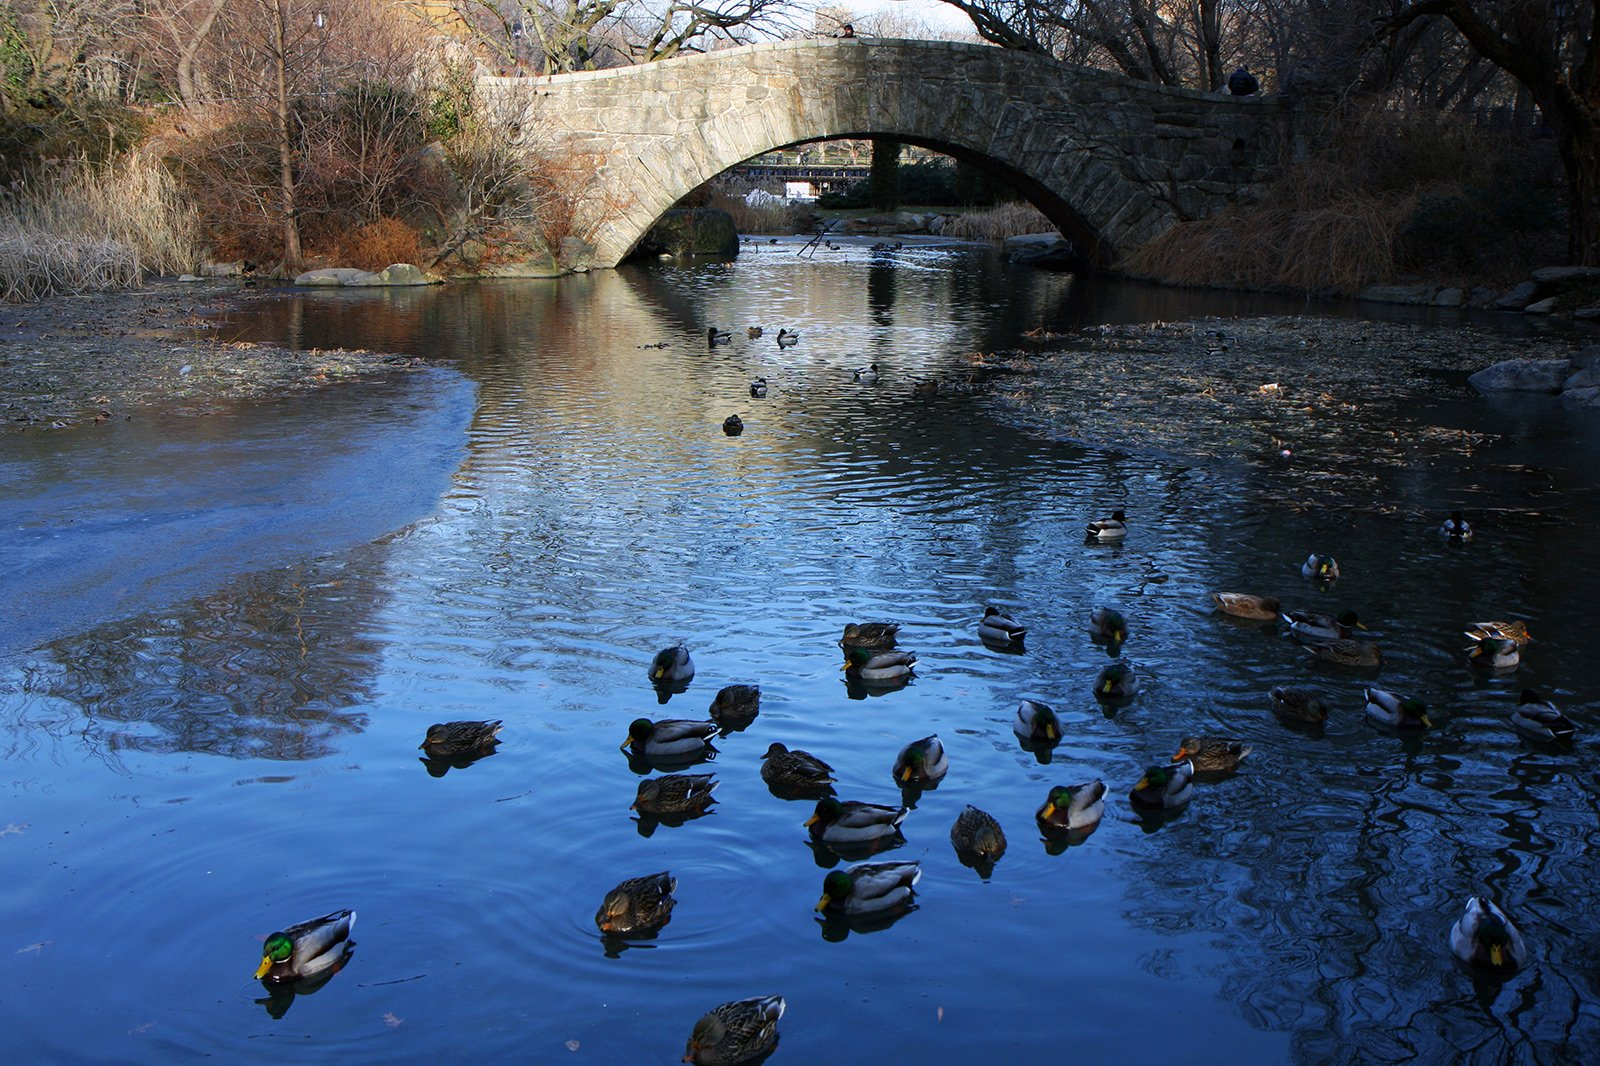 How to feed ducks in Central Park in New York